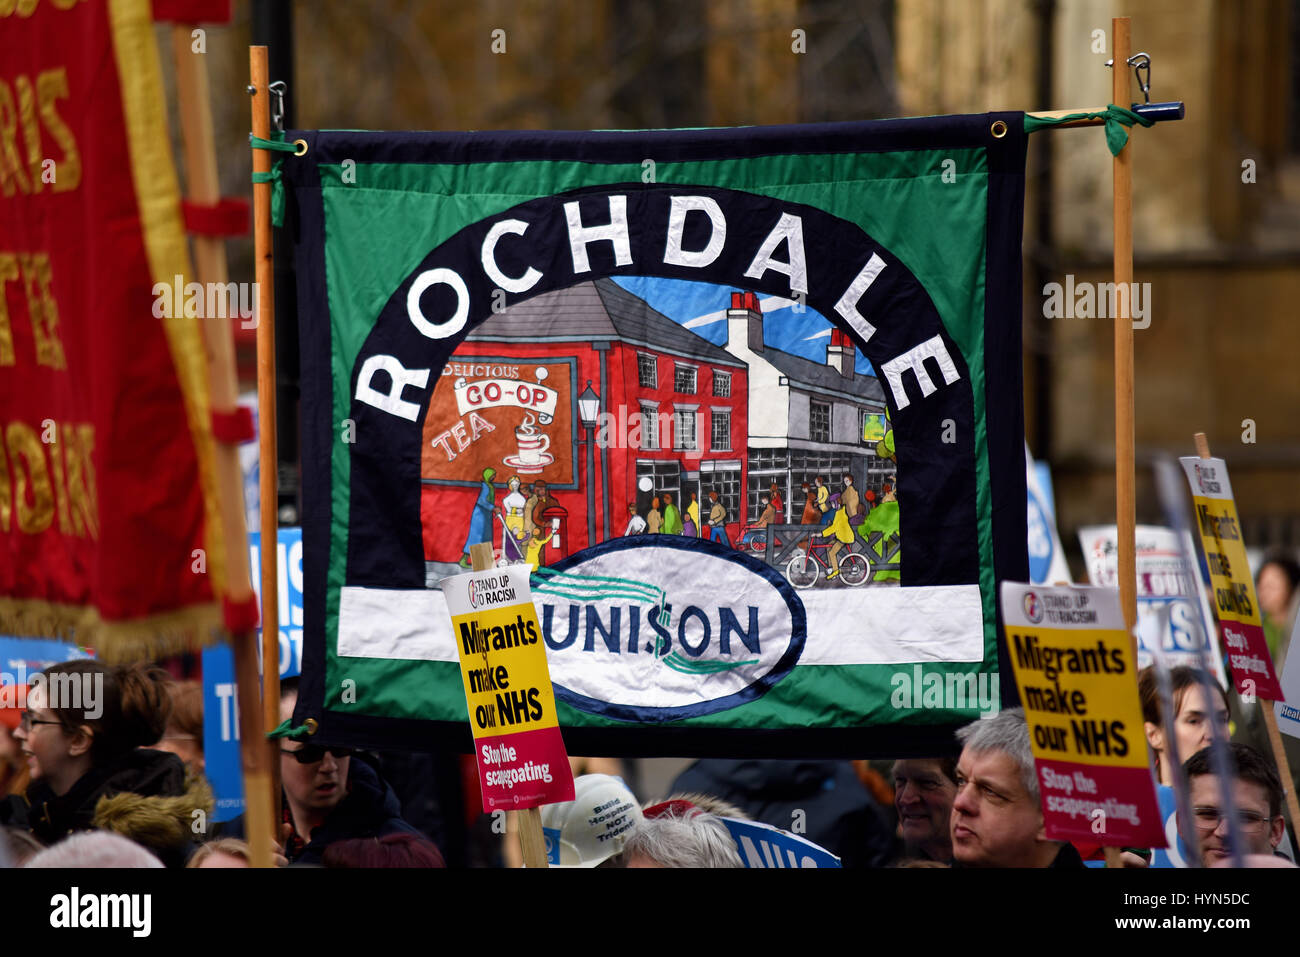 Rochdale branch of Unison banner during the 'Our NHS' support for the National Health Service demonstration - Stock Image